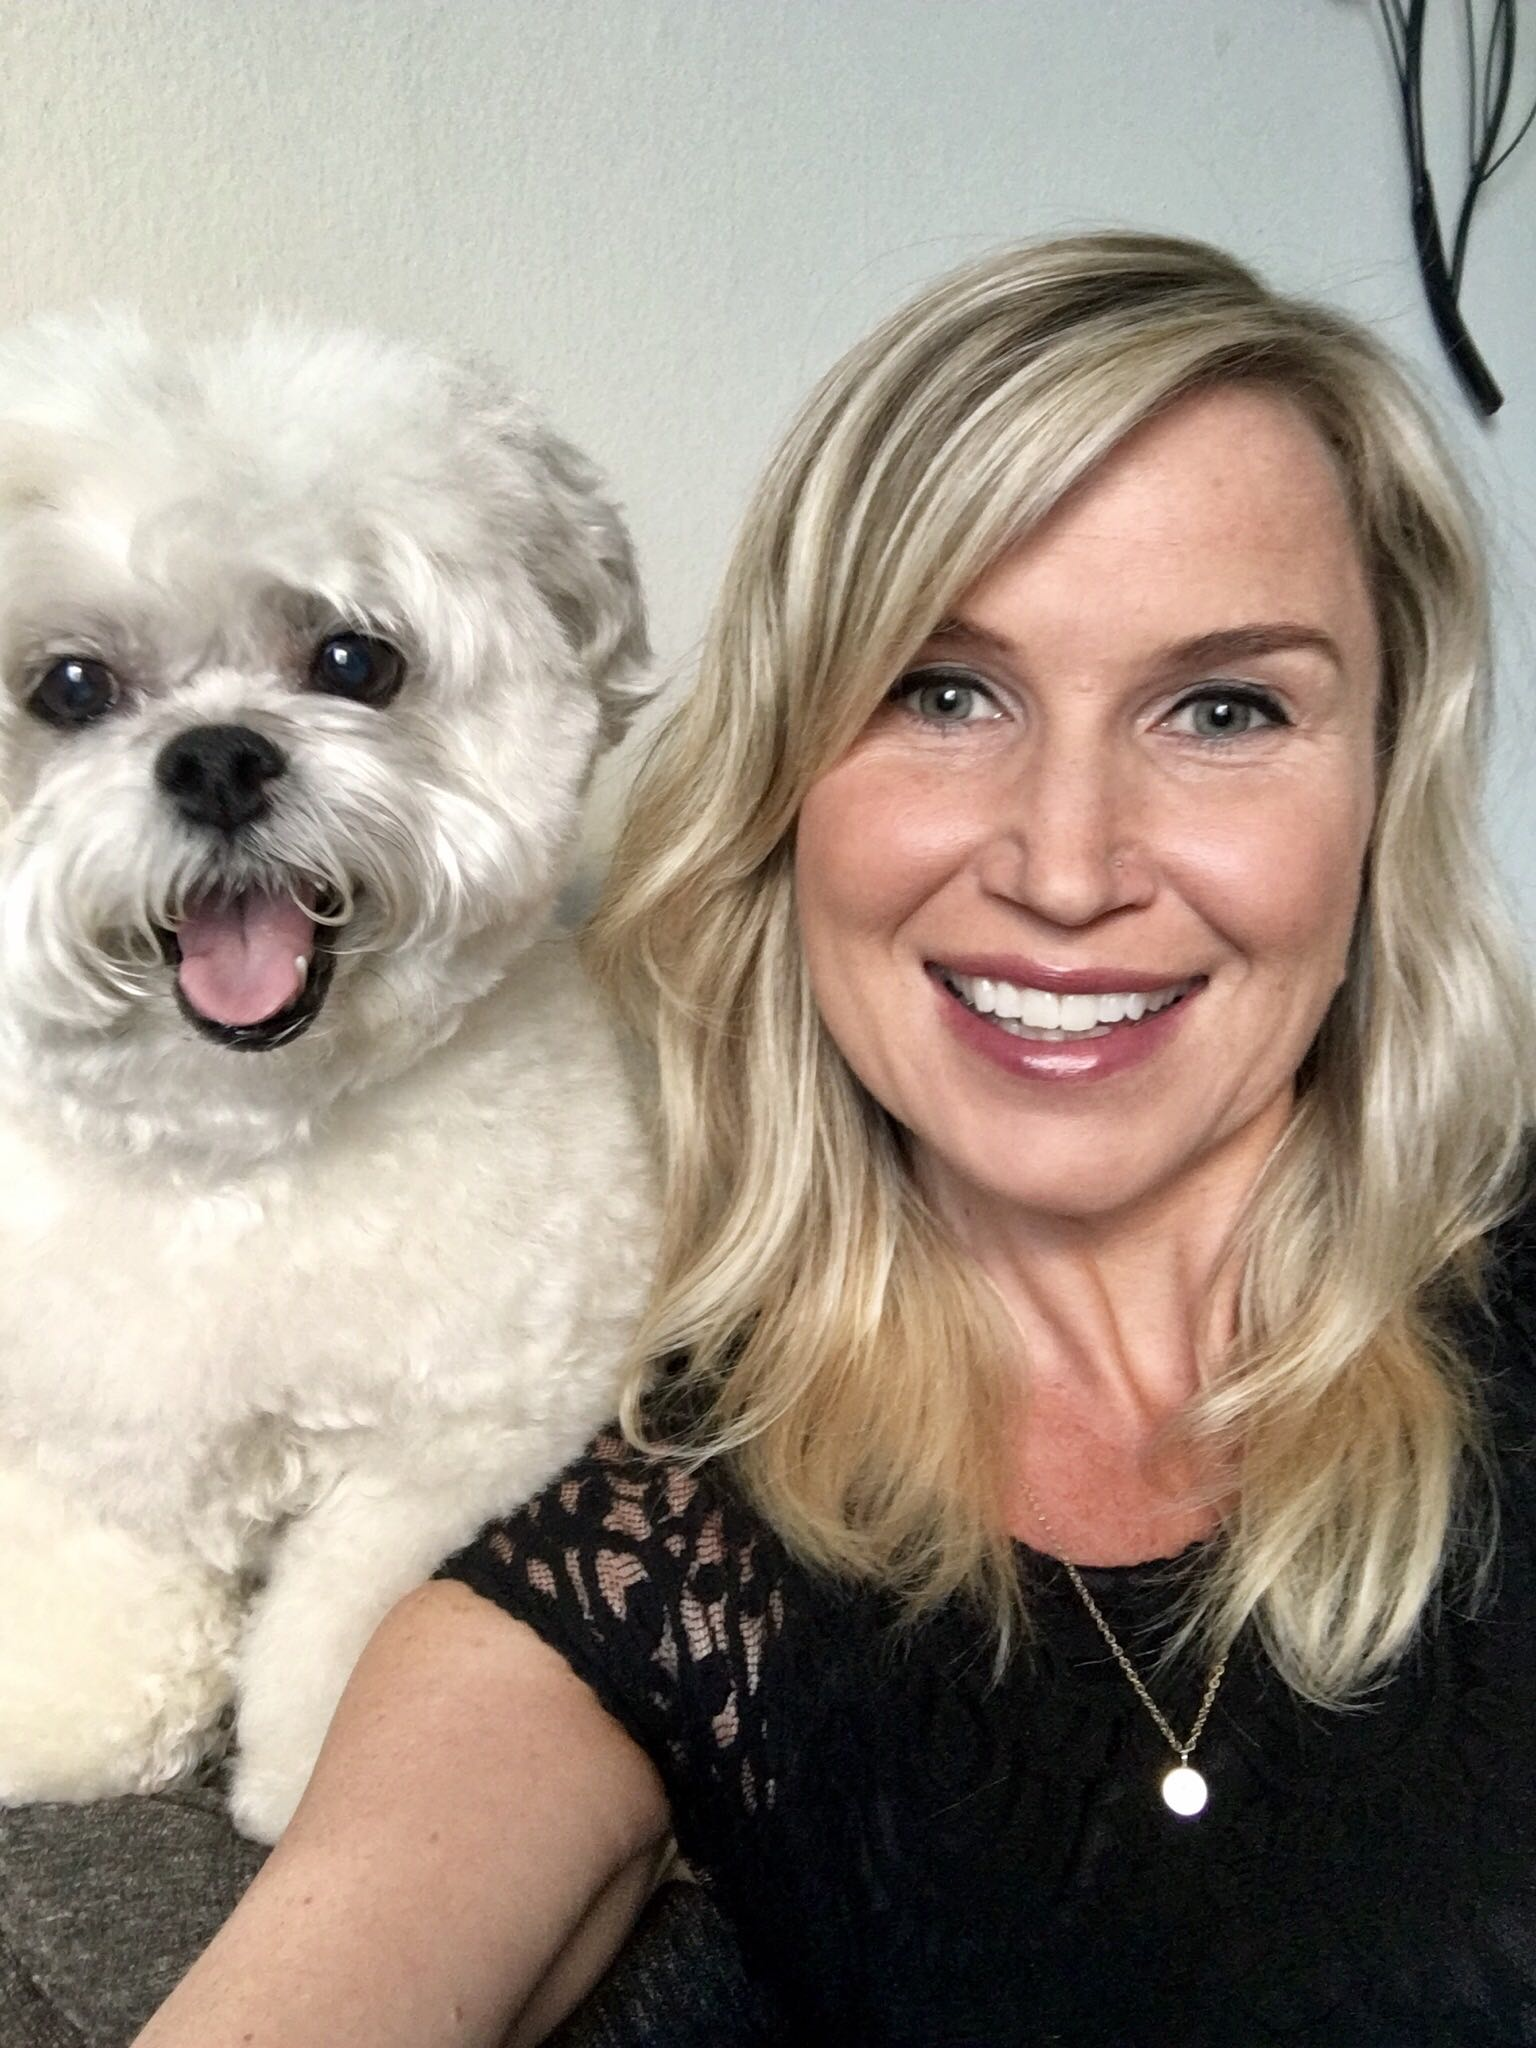 Amy is a Product Marketing Manager for UserTesting. When she's not advocating for customers or crafting compelling product messaging, she's most likely going for a run or managing the fans of her dogs' Instagram accounts.